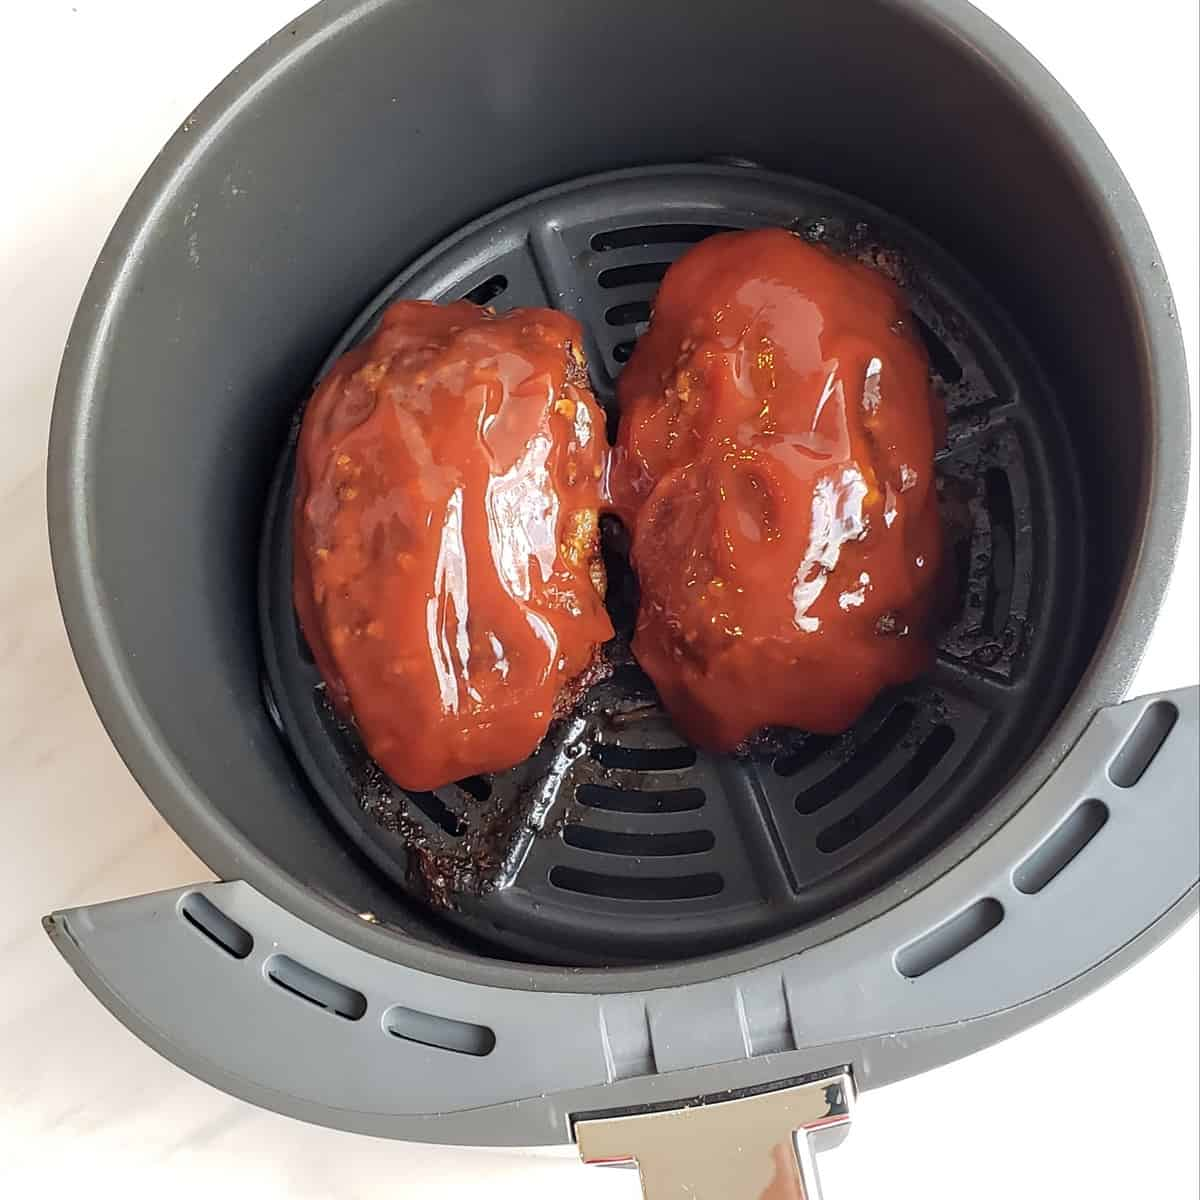 Topping Best Air Fryer Meat Loaf with Tangy Sauce in the air fryer